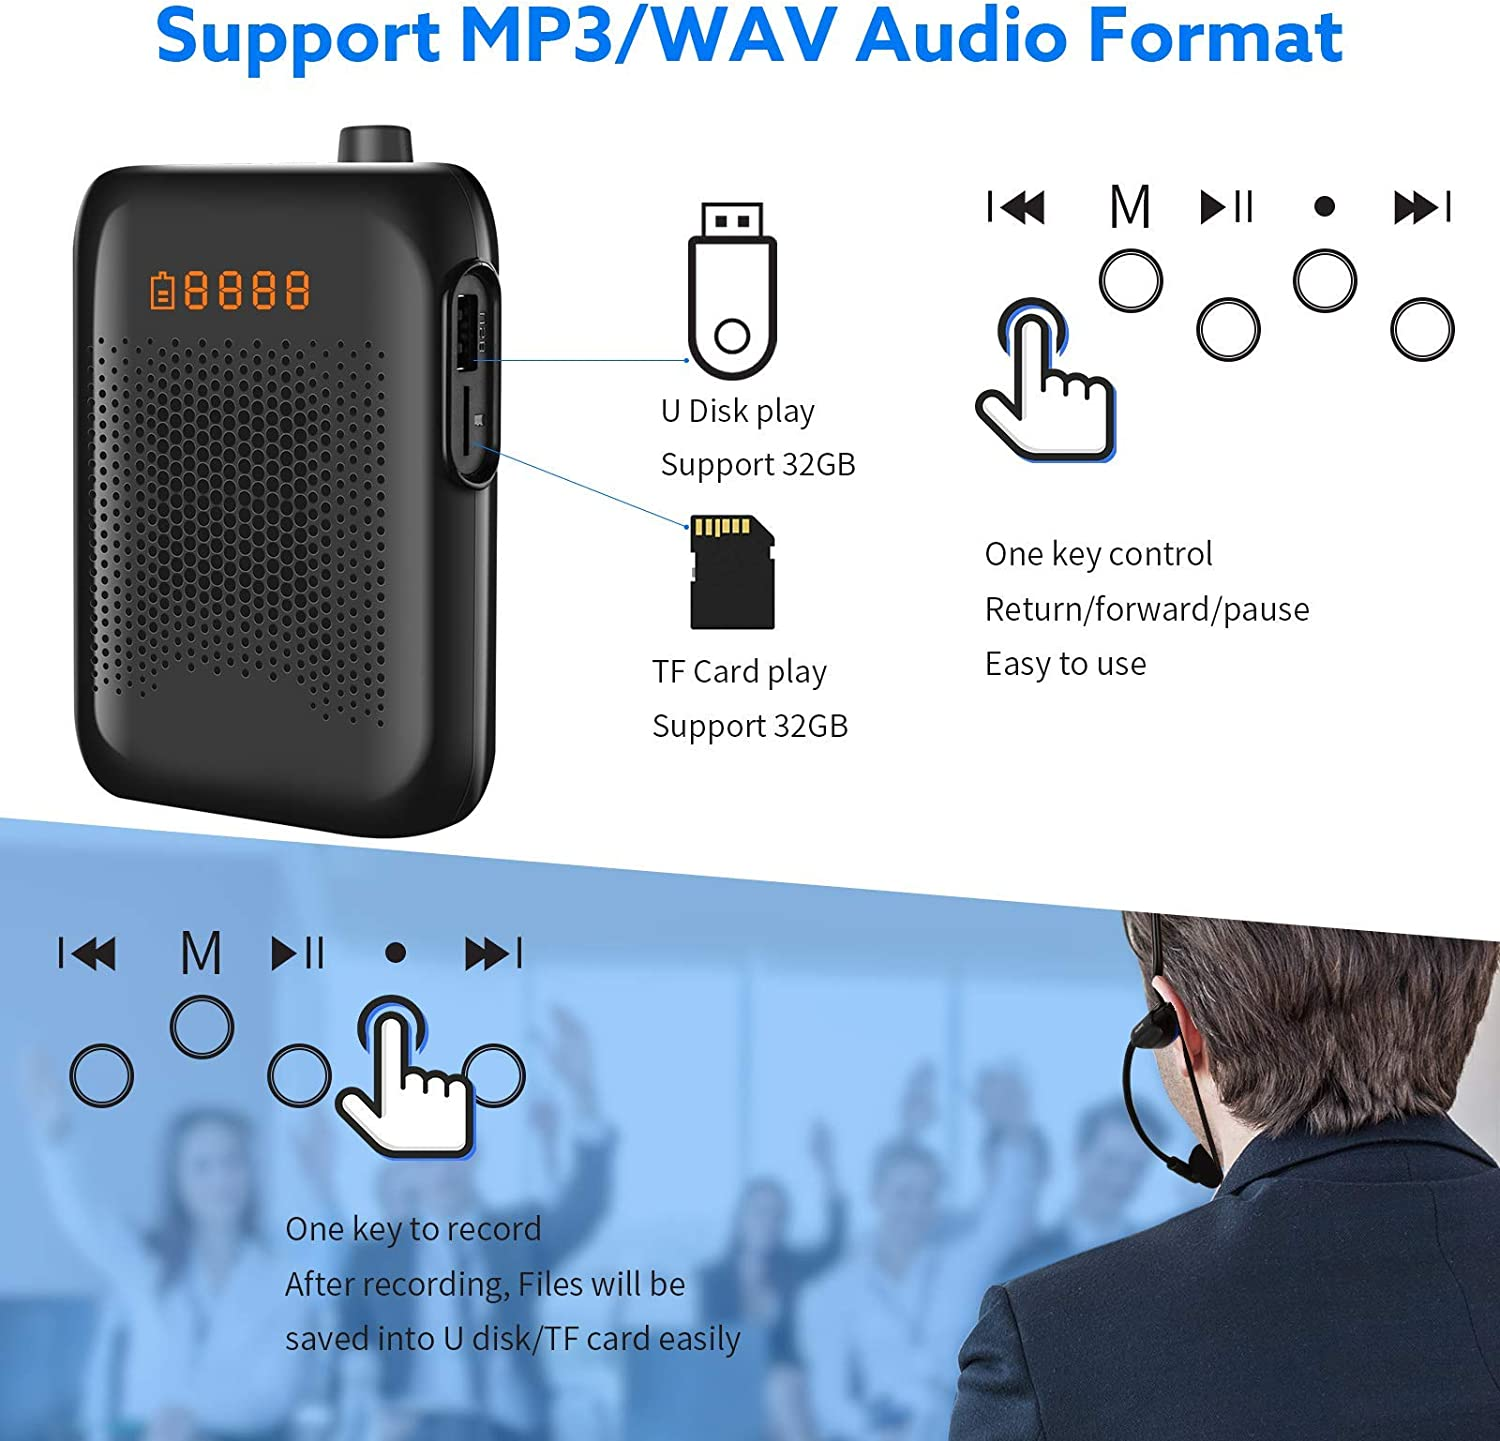 2000mAh Battery Classroom Meetings and Outdoors and Waistband Tour Guide Mini 20W USB Loundspeaker with Sound-amplifying Wired Microphone Headset Portable Voice Amplifier for Teachers